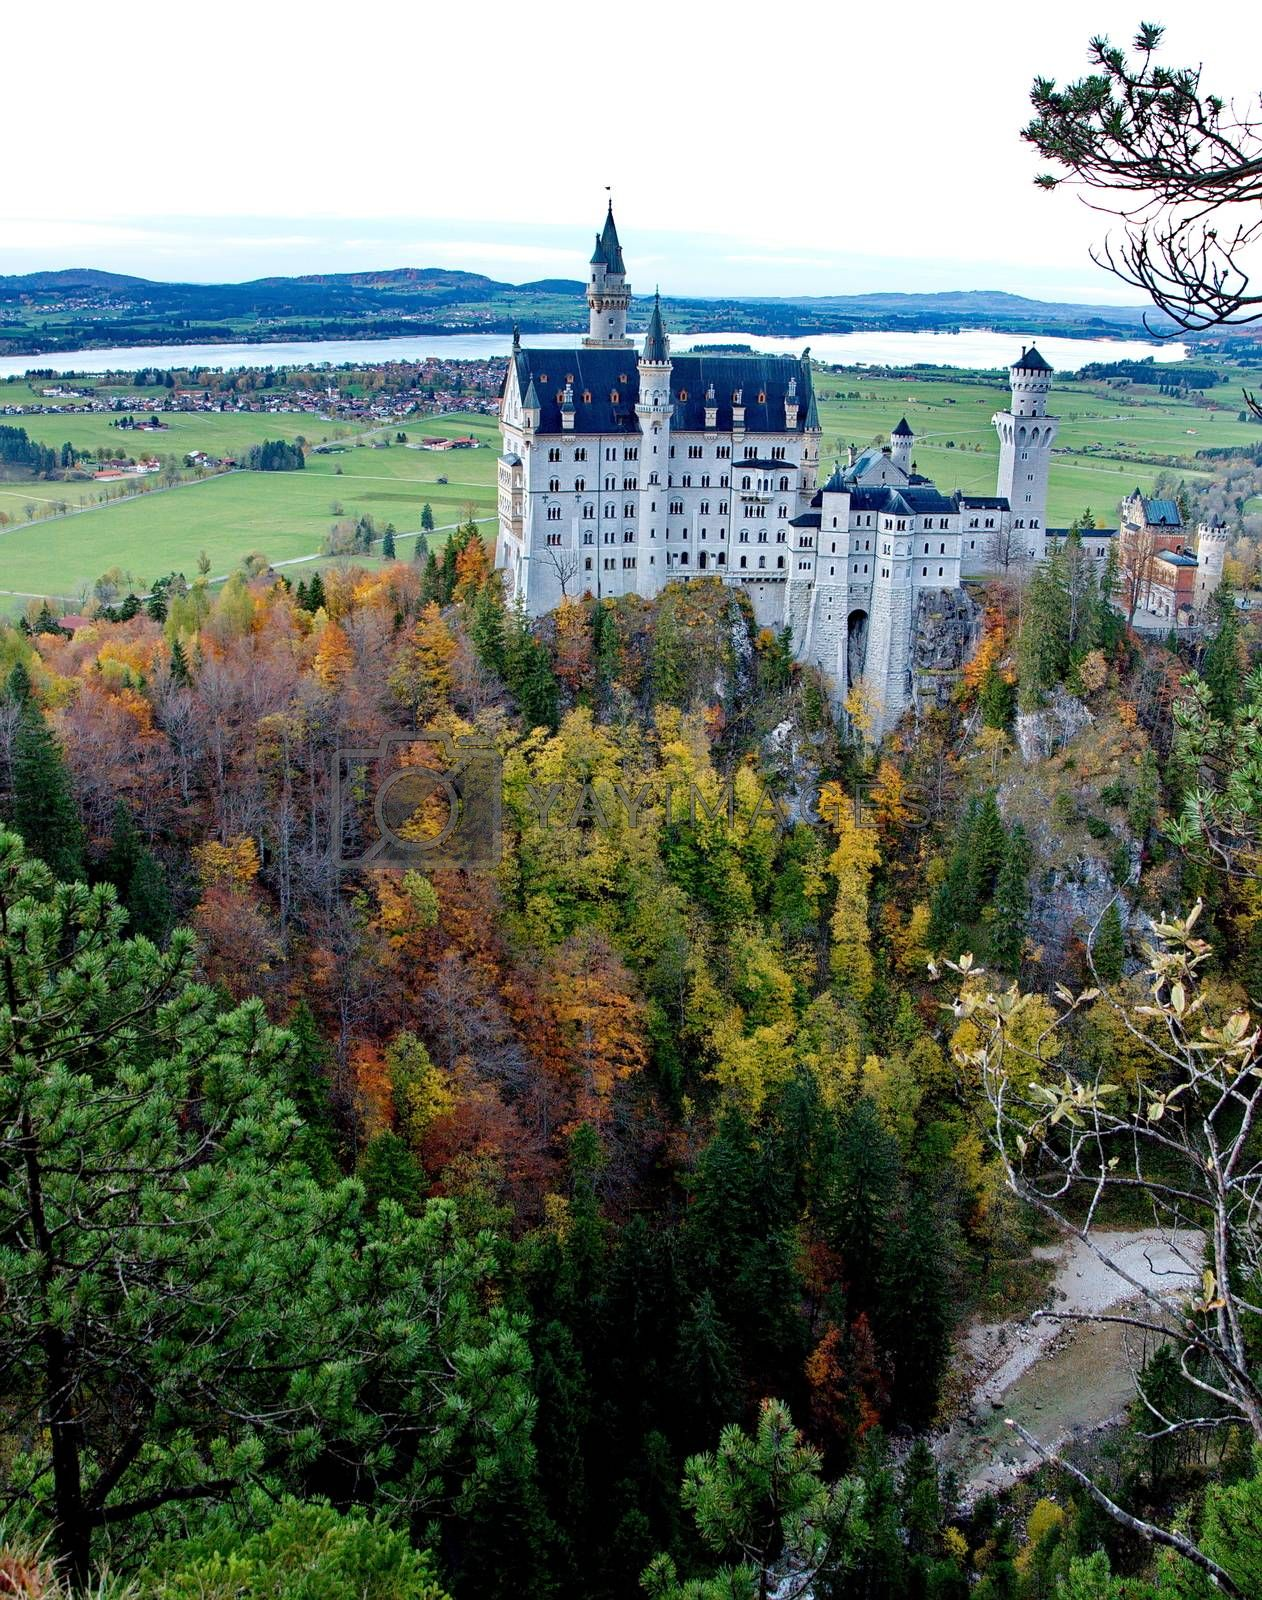 Royalty free image of Castle of Neuschwanstein near Munich in Germany on an autumn day by anderm